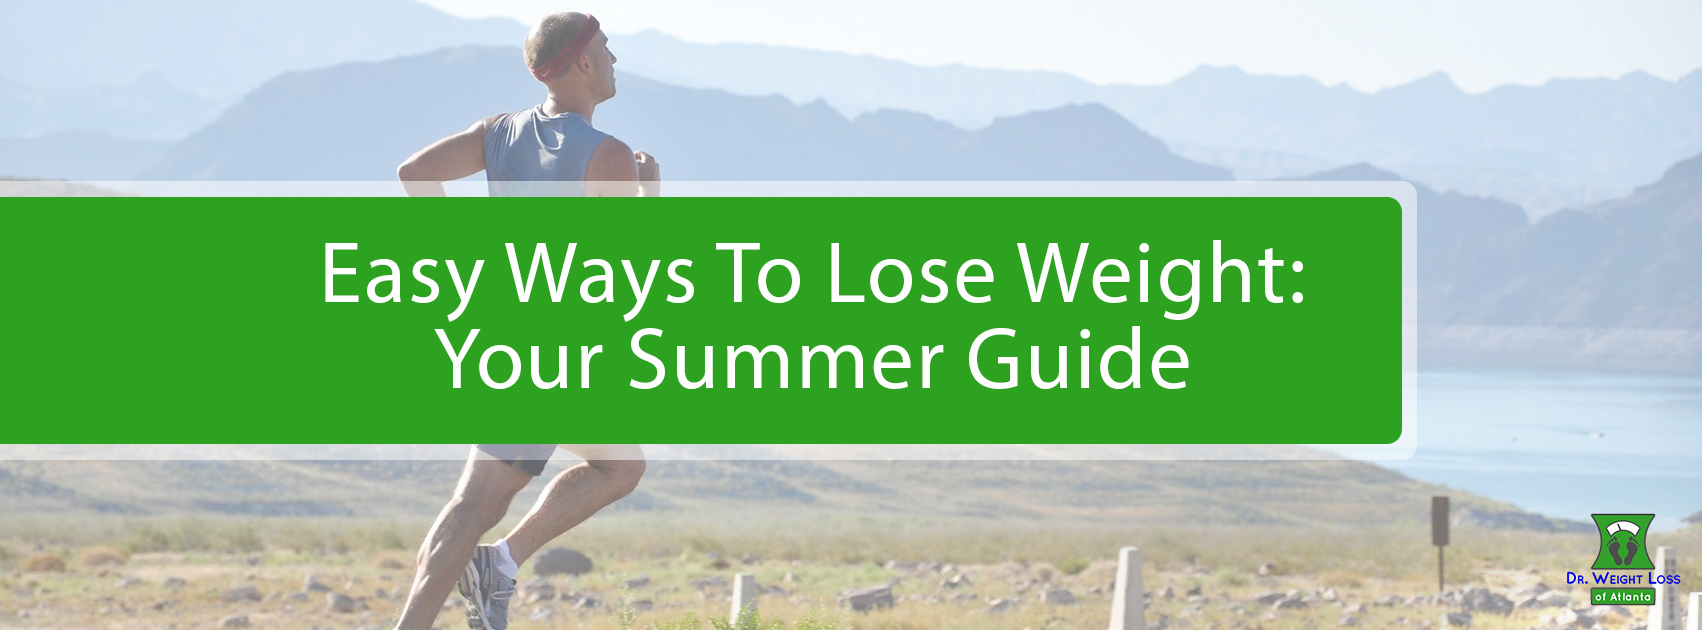 Easy Ways To Lose Weight Summer Guide Dr Weight Loss Of Atlanta